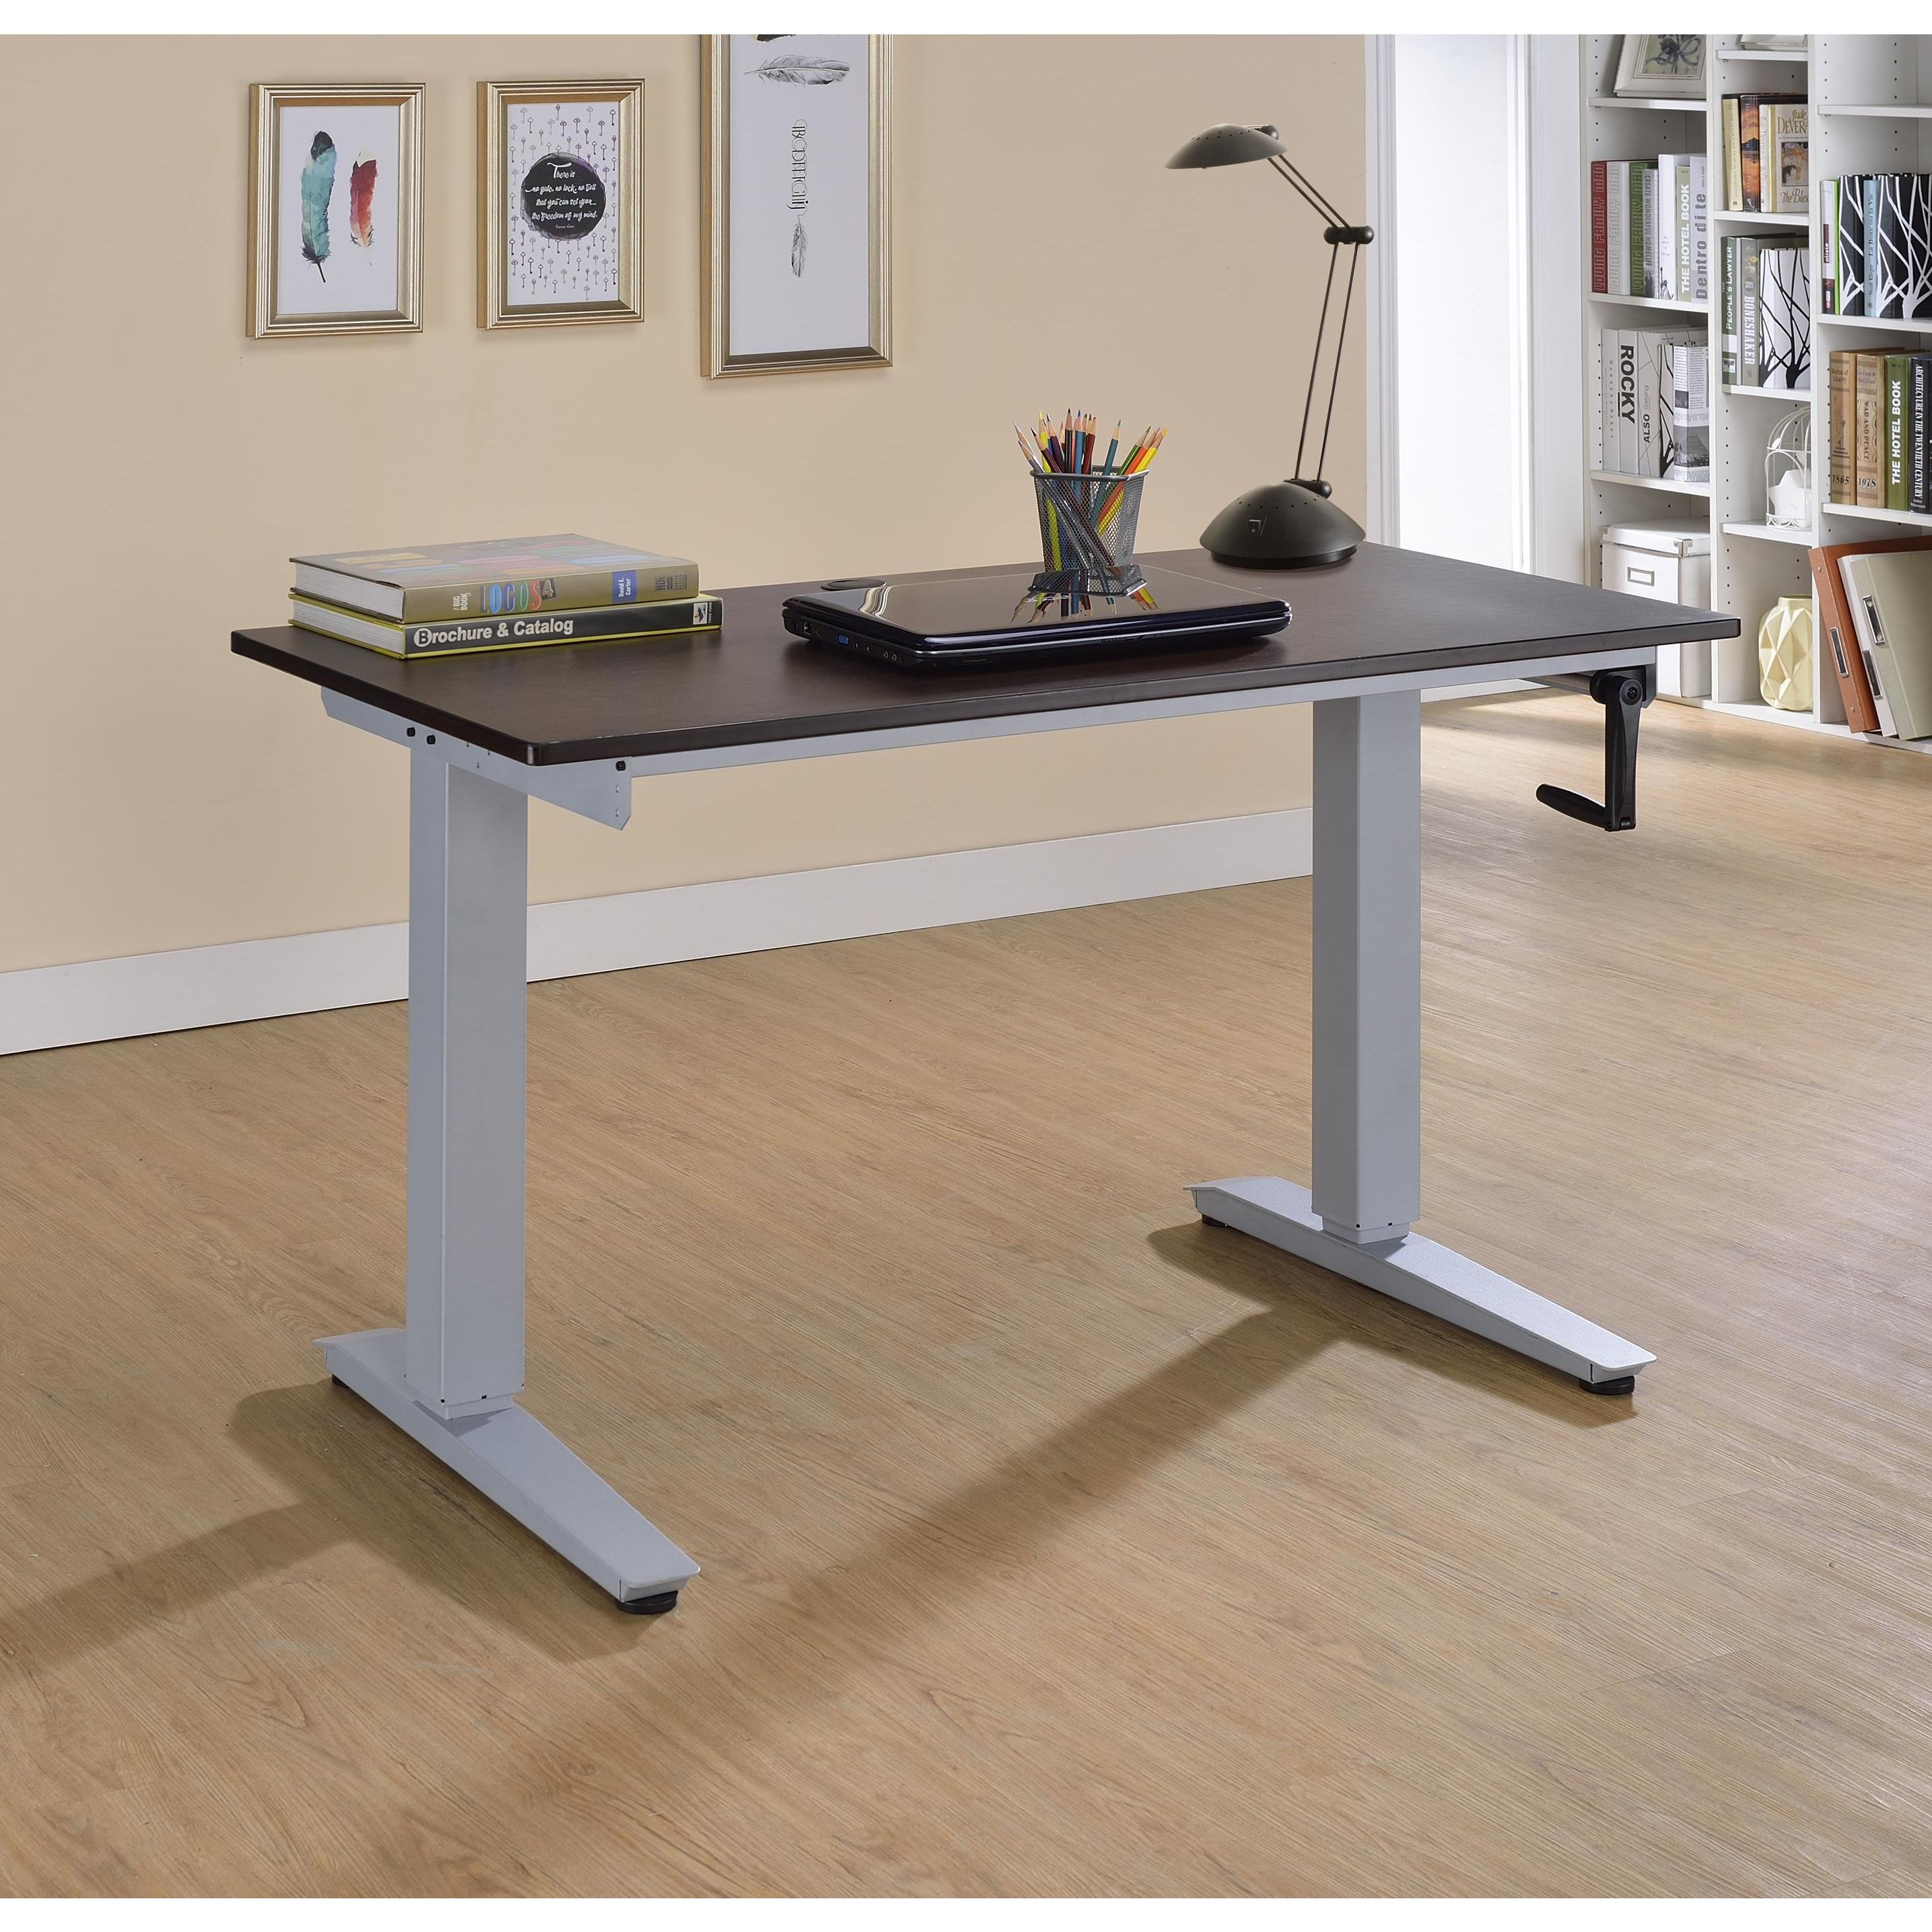 Acme Furniture Bliss Adjustable Height Wooden Desk - Free Shipping Today -  Overstock.com - 20763690